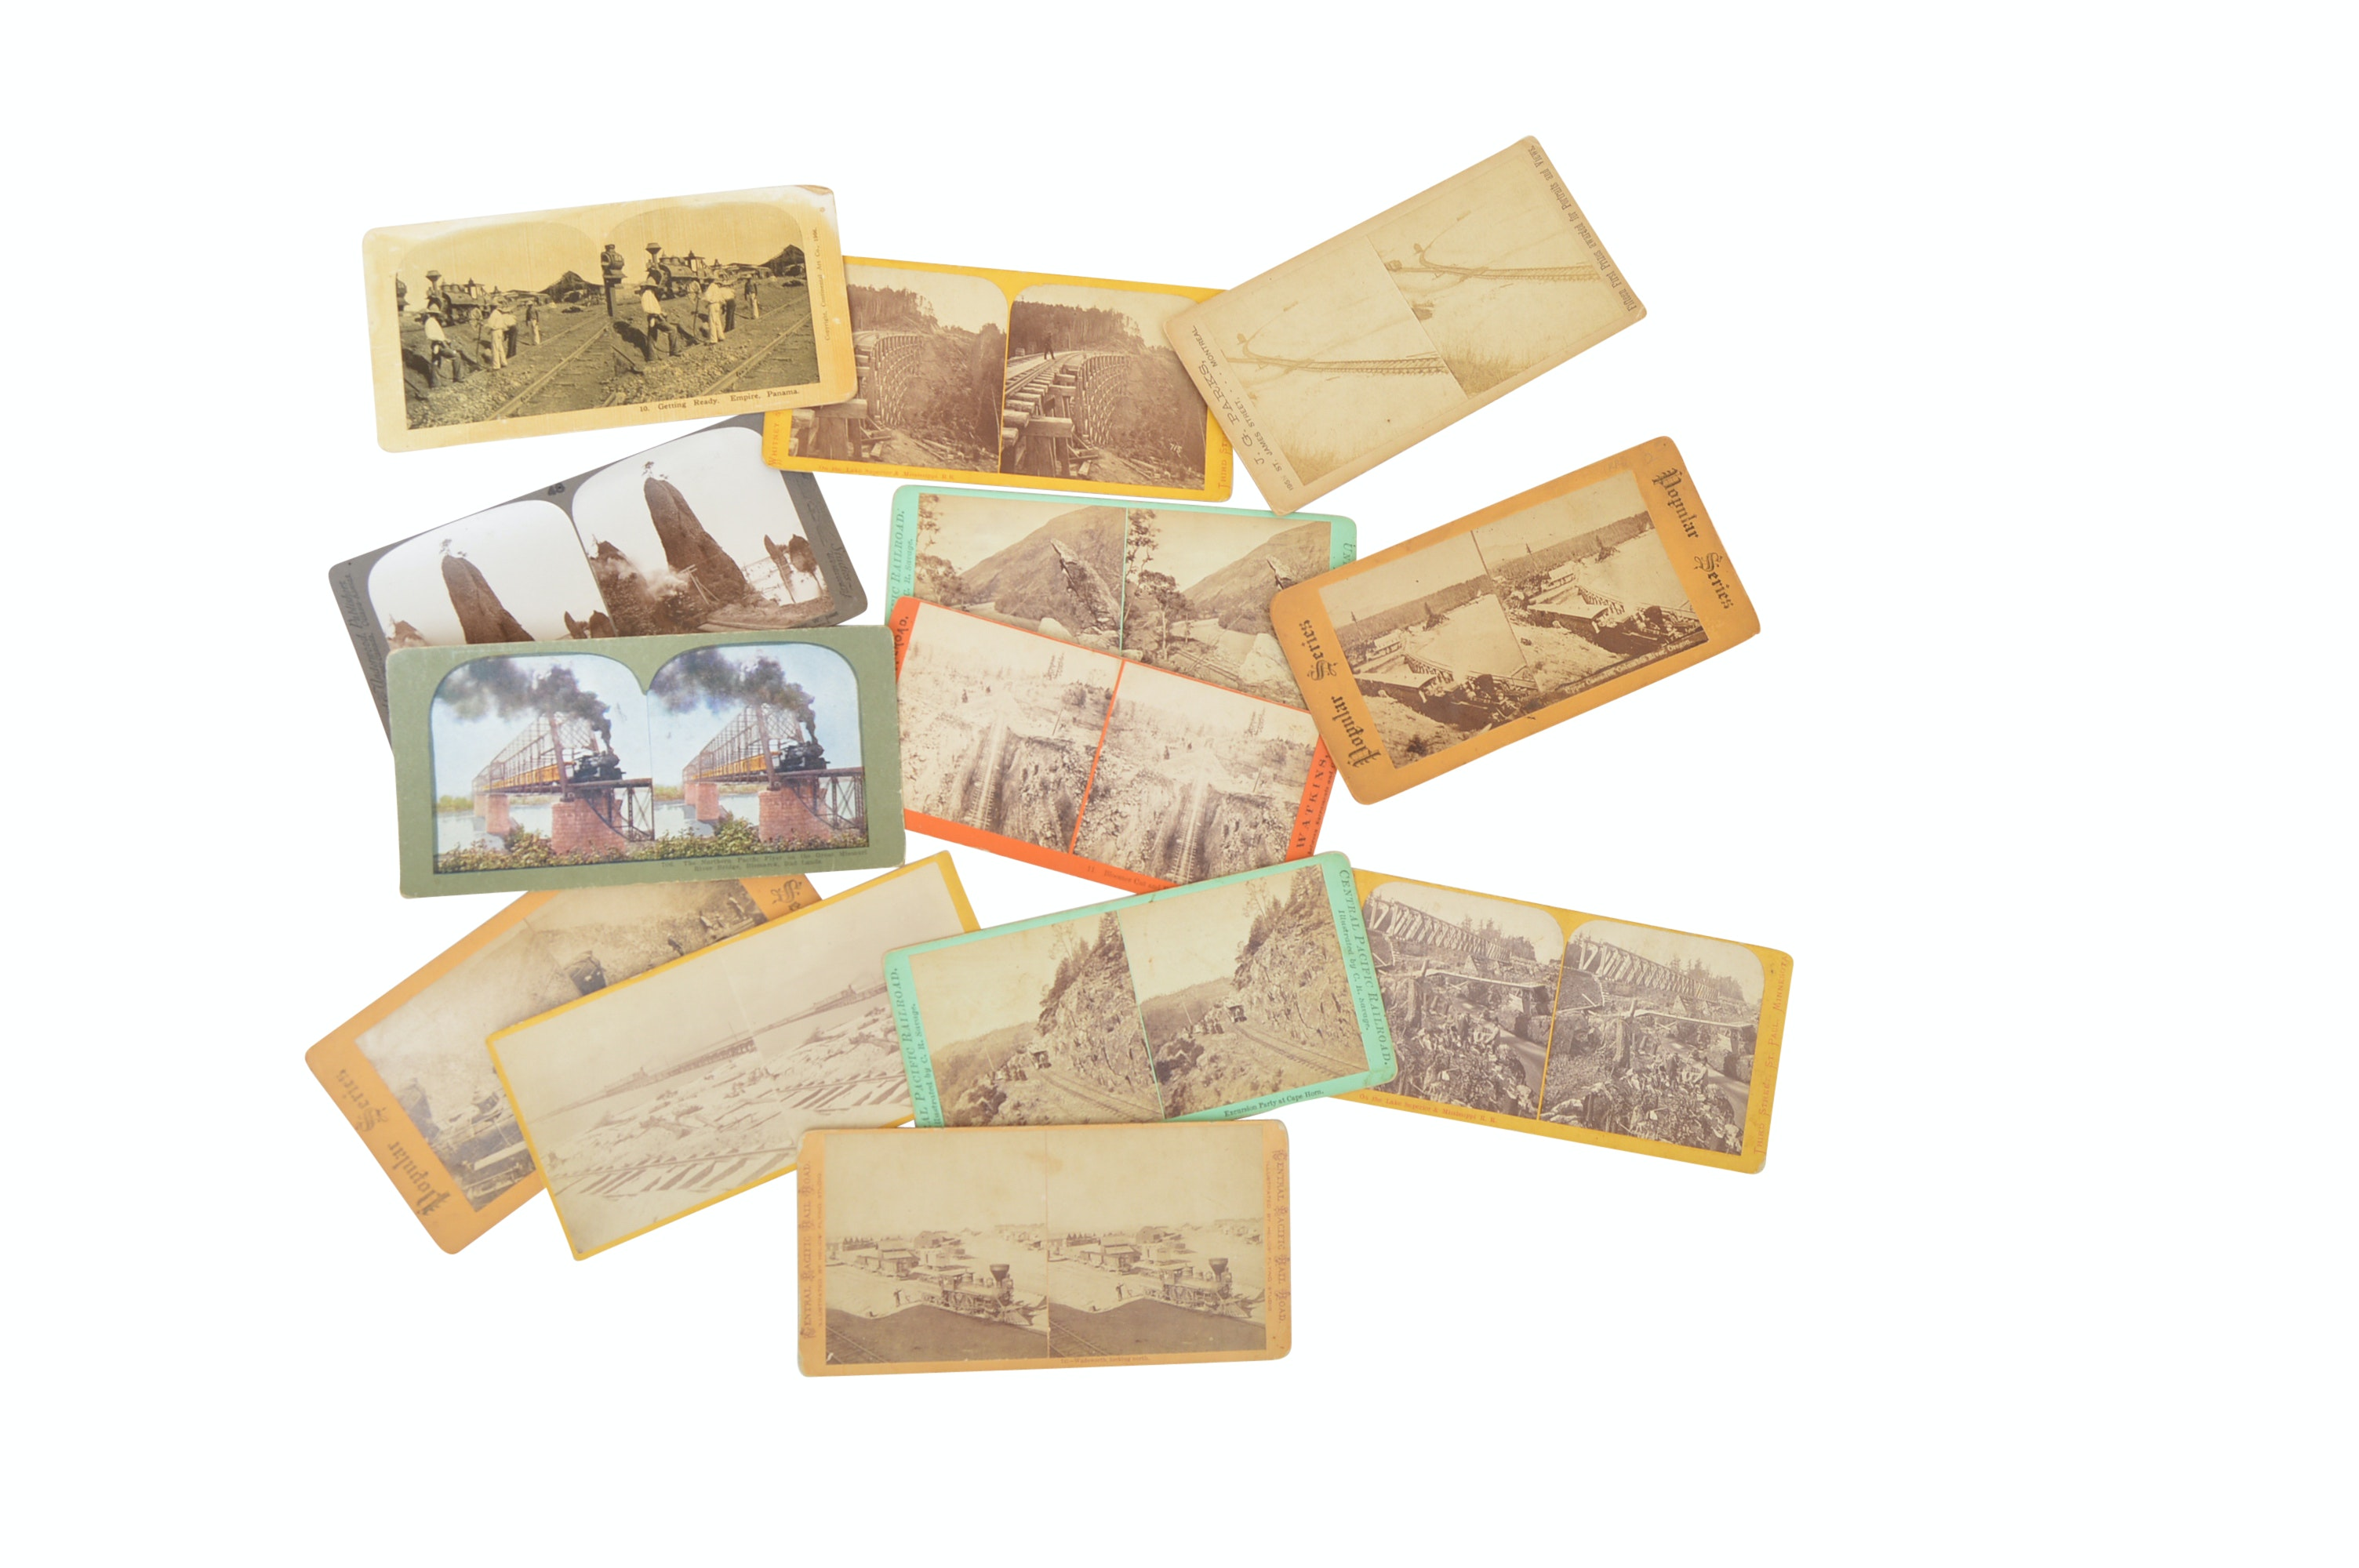 13 Early 20th Century Stereoscopic Cards with Western and Railway Themes